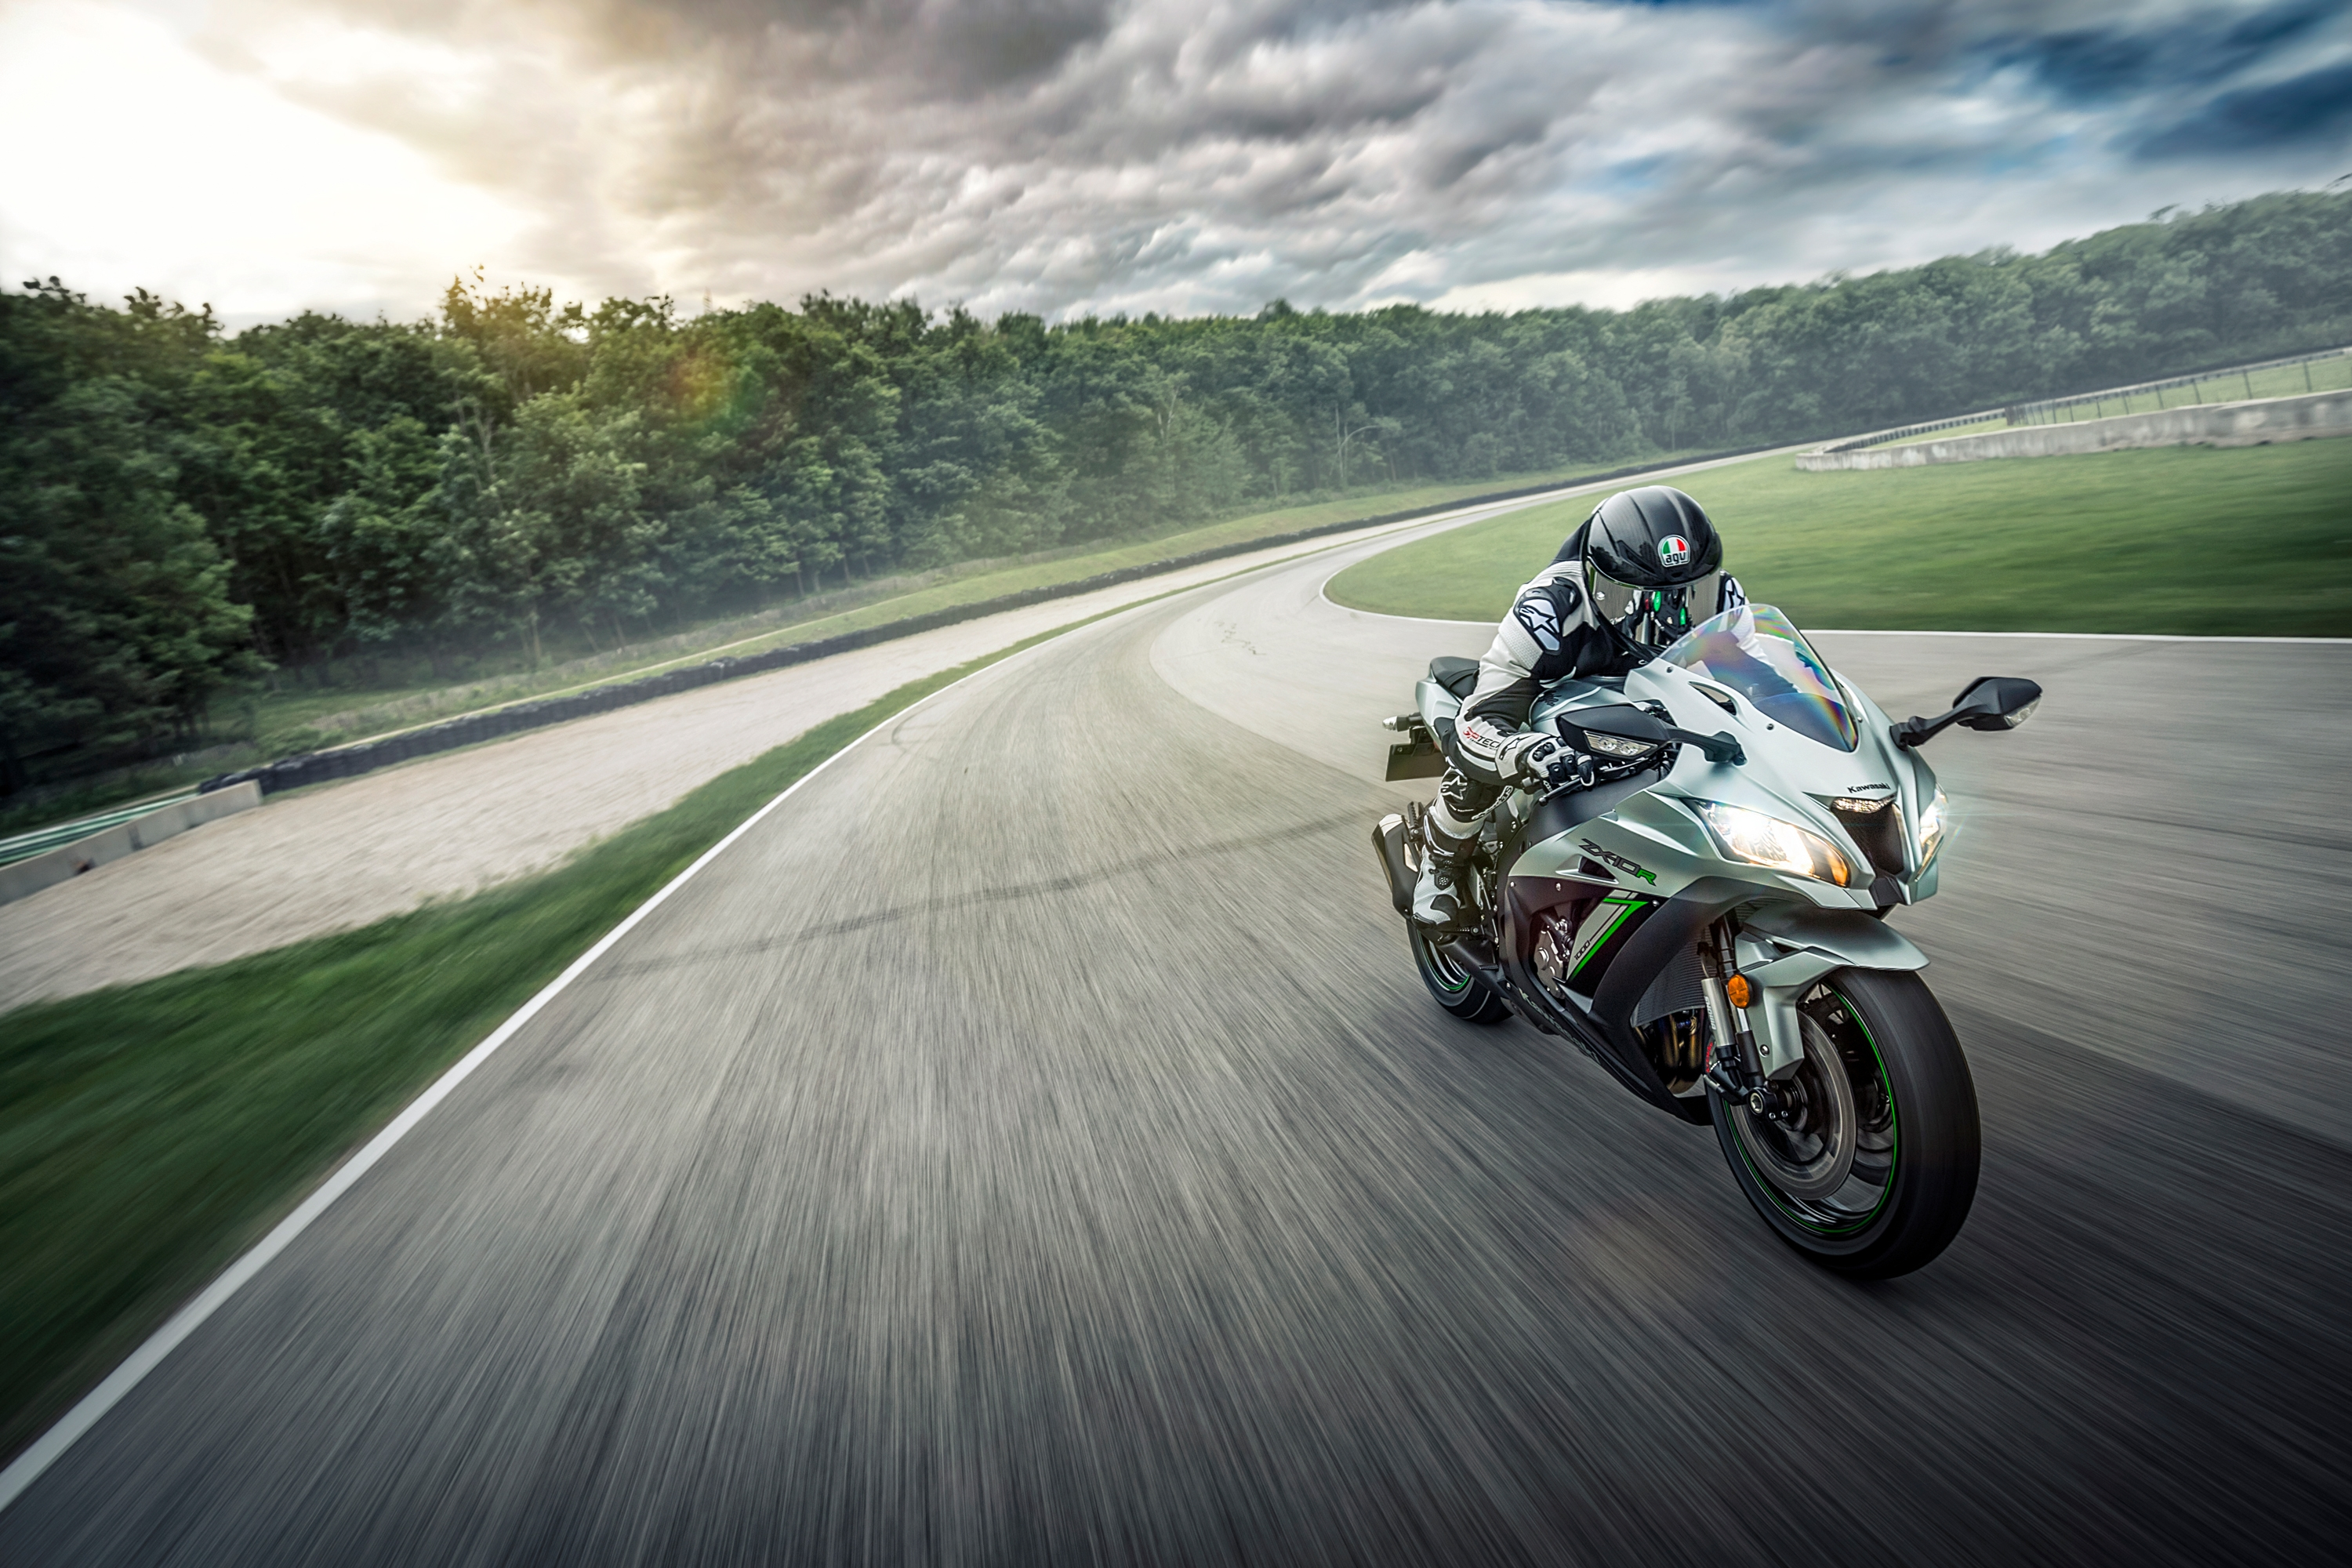 Kawasaki street bike on a test track hitting the straight away